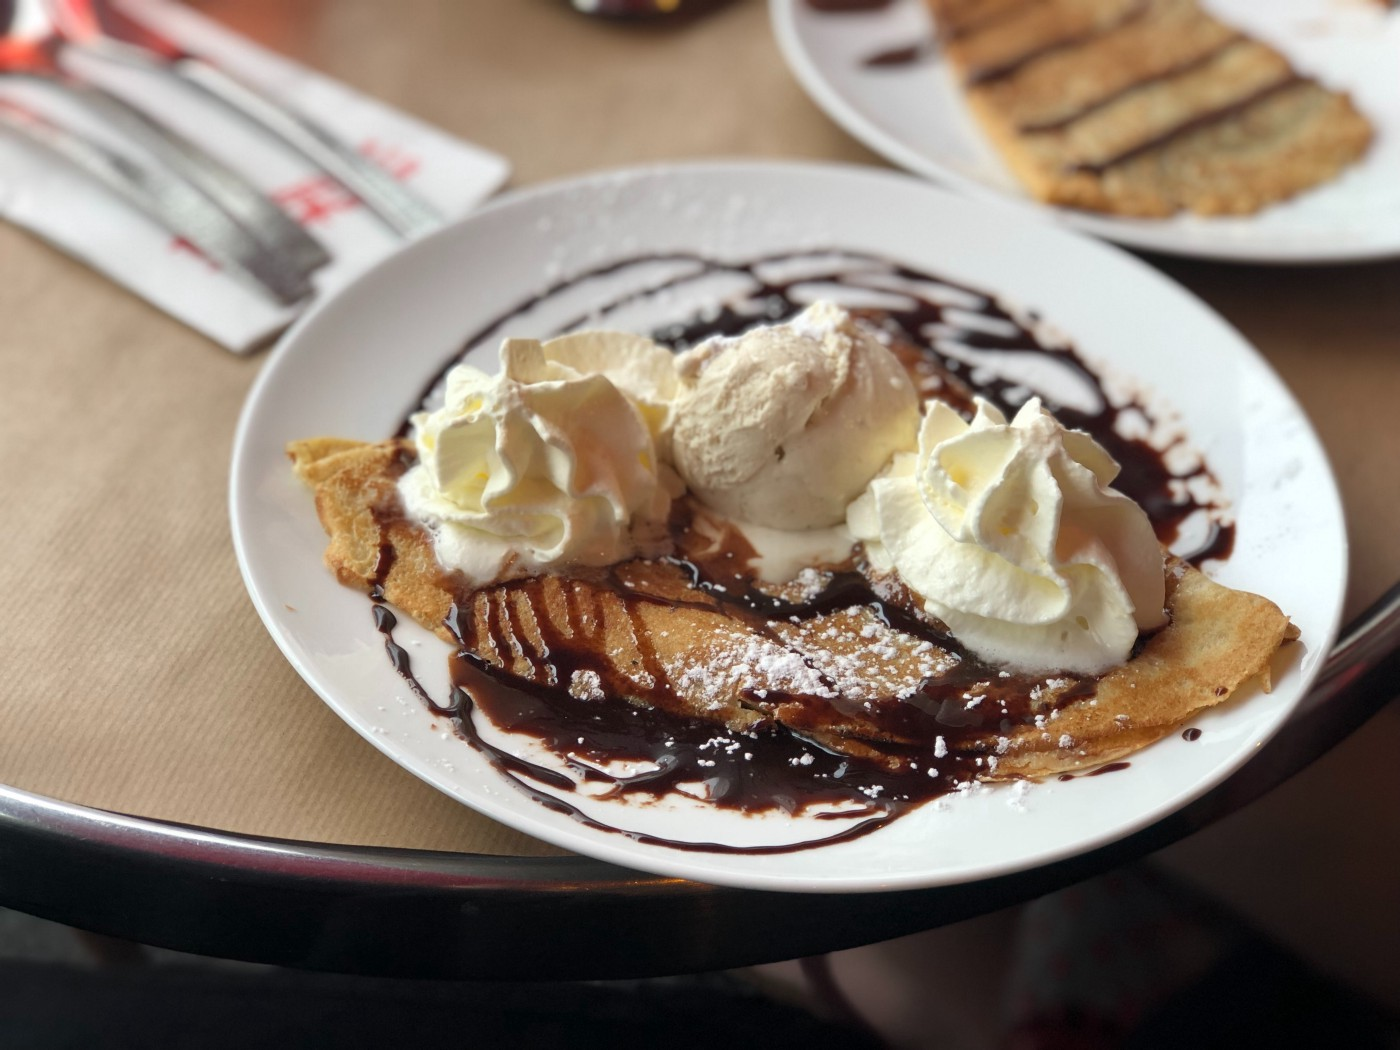 A crepe topped with chocolate sauce, ice cream, and whipped cream.